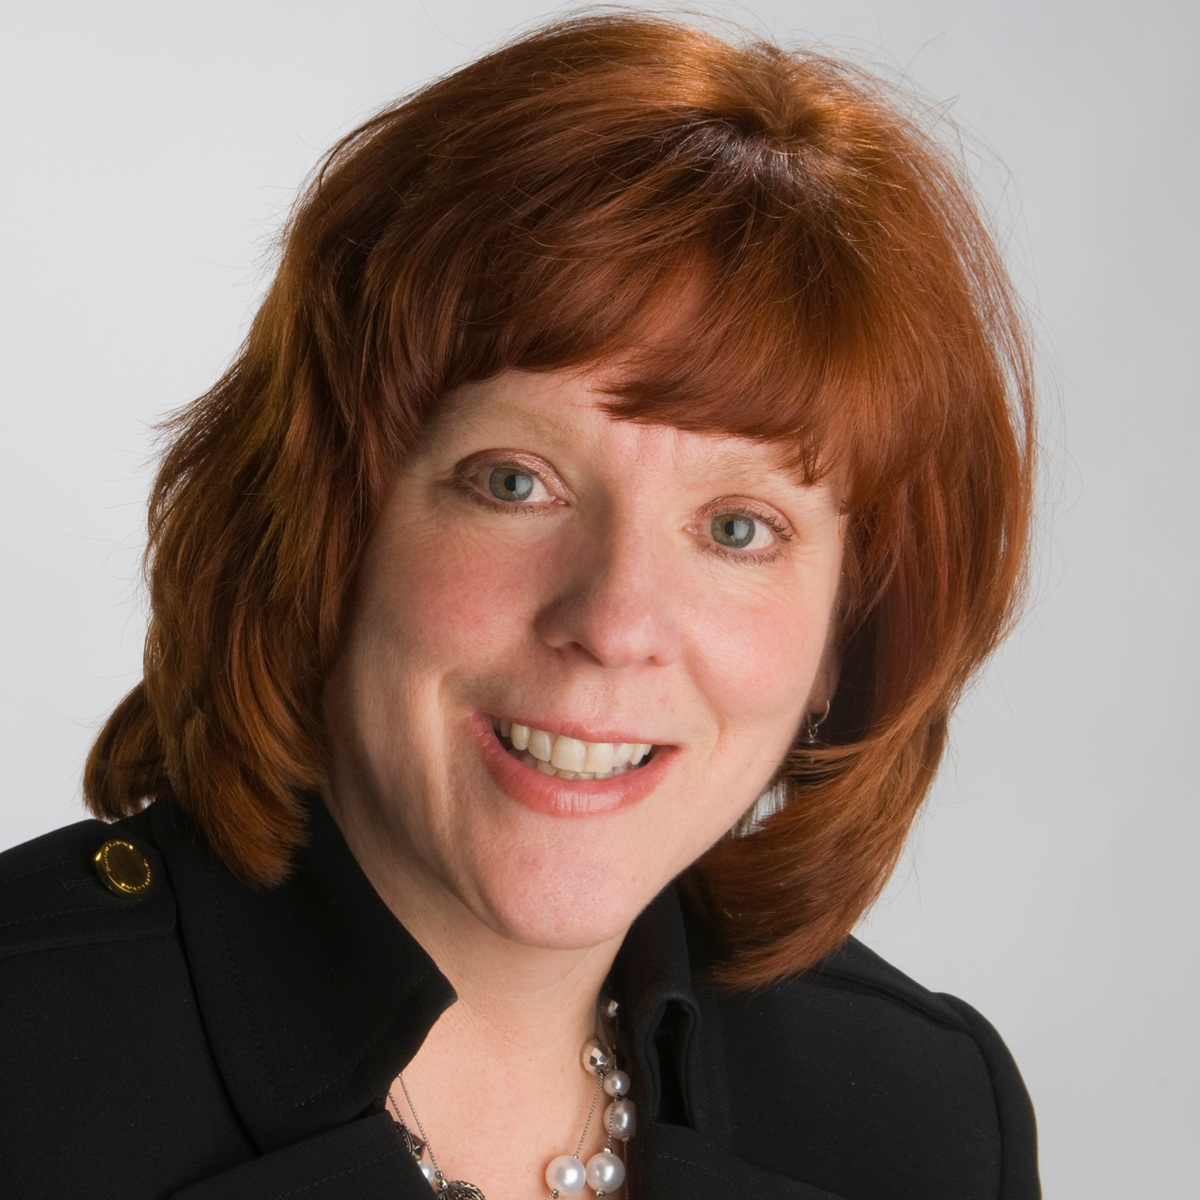 Barbara Yingling, RN, BSN, MAedSisters of Charity Health System - Barbara Yingling is the Vice President Patient Care Services and Chief Nursing Officer. Sisters of Charity Health System has been a member of the Supportive Care Coalition since 2009.